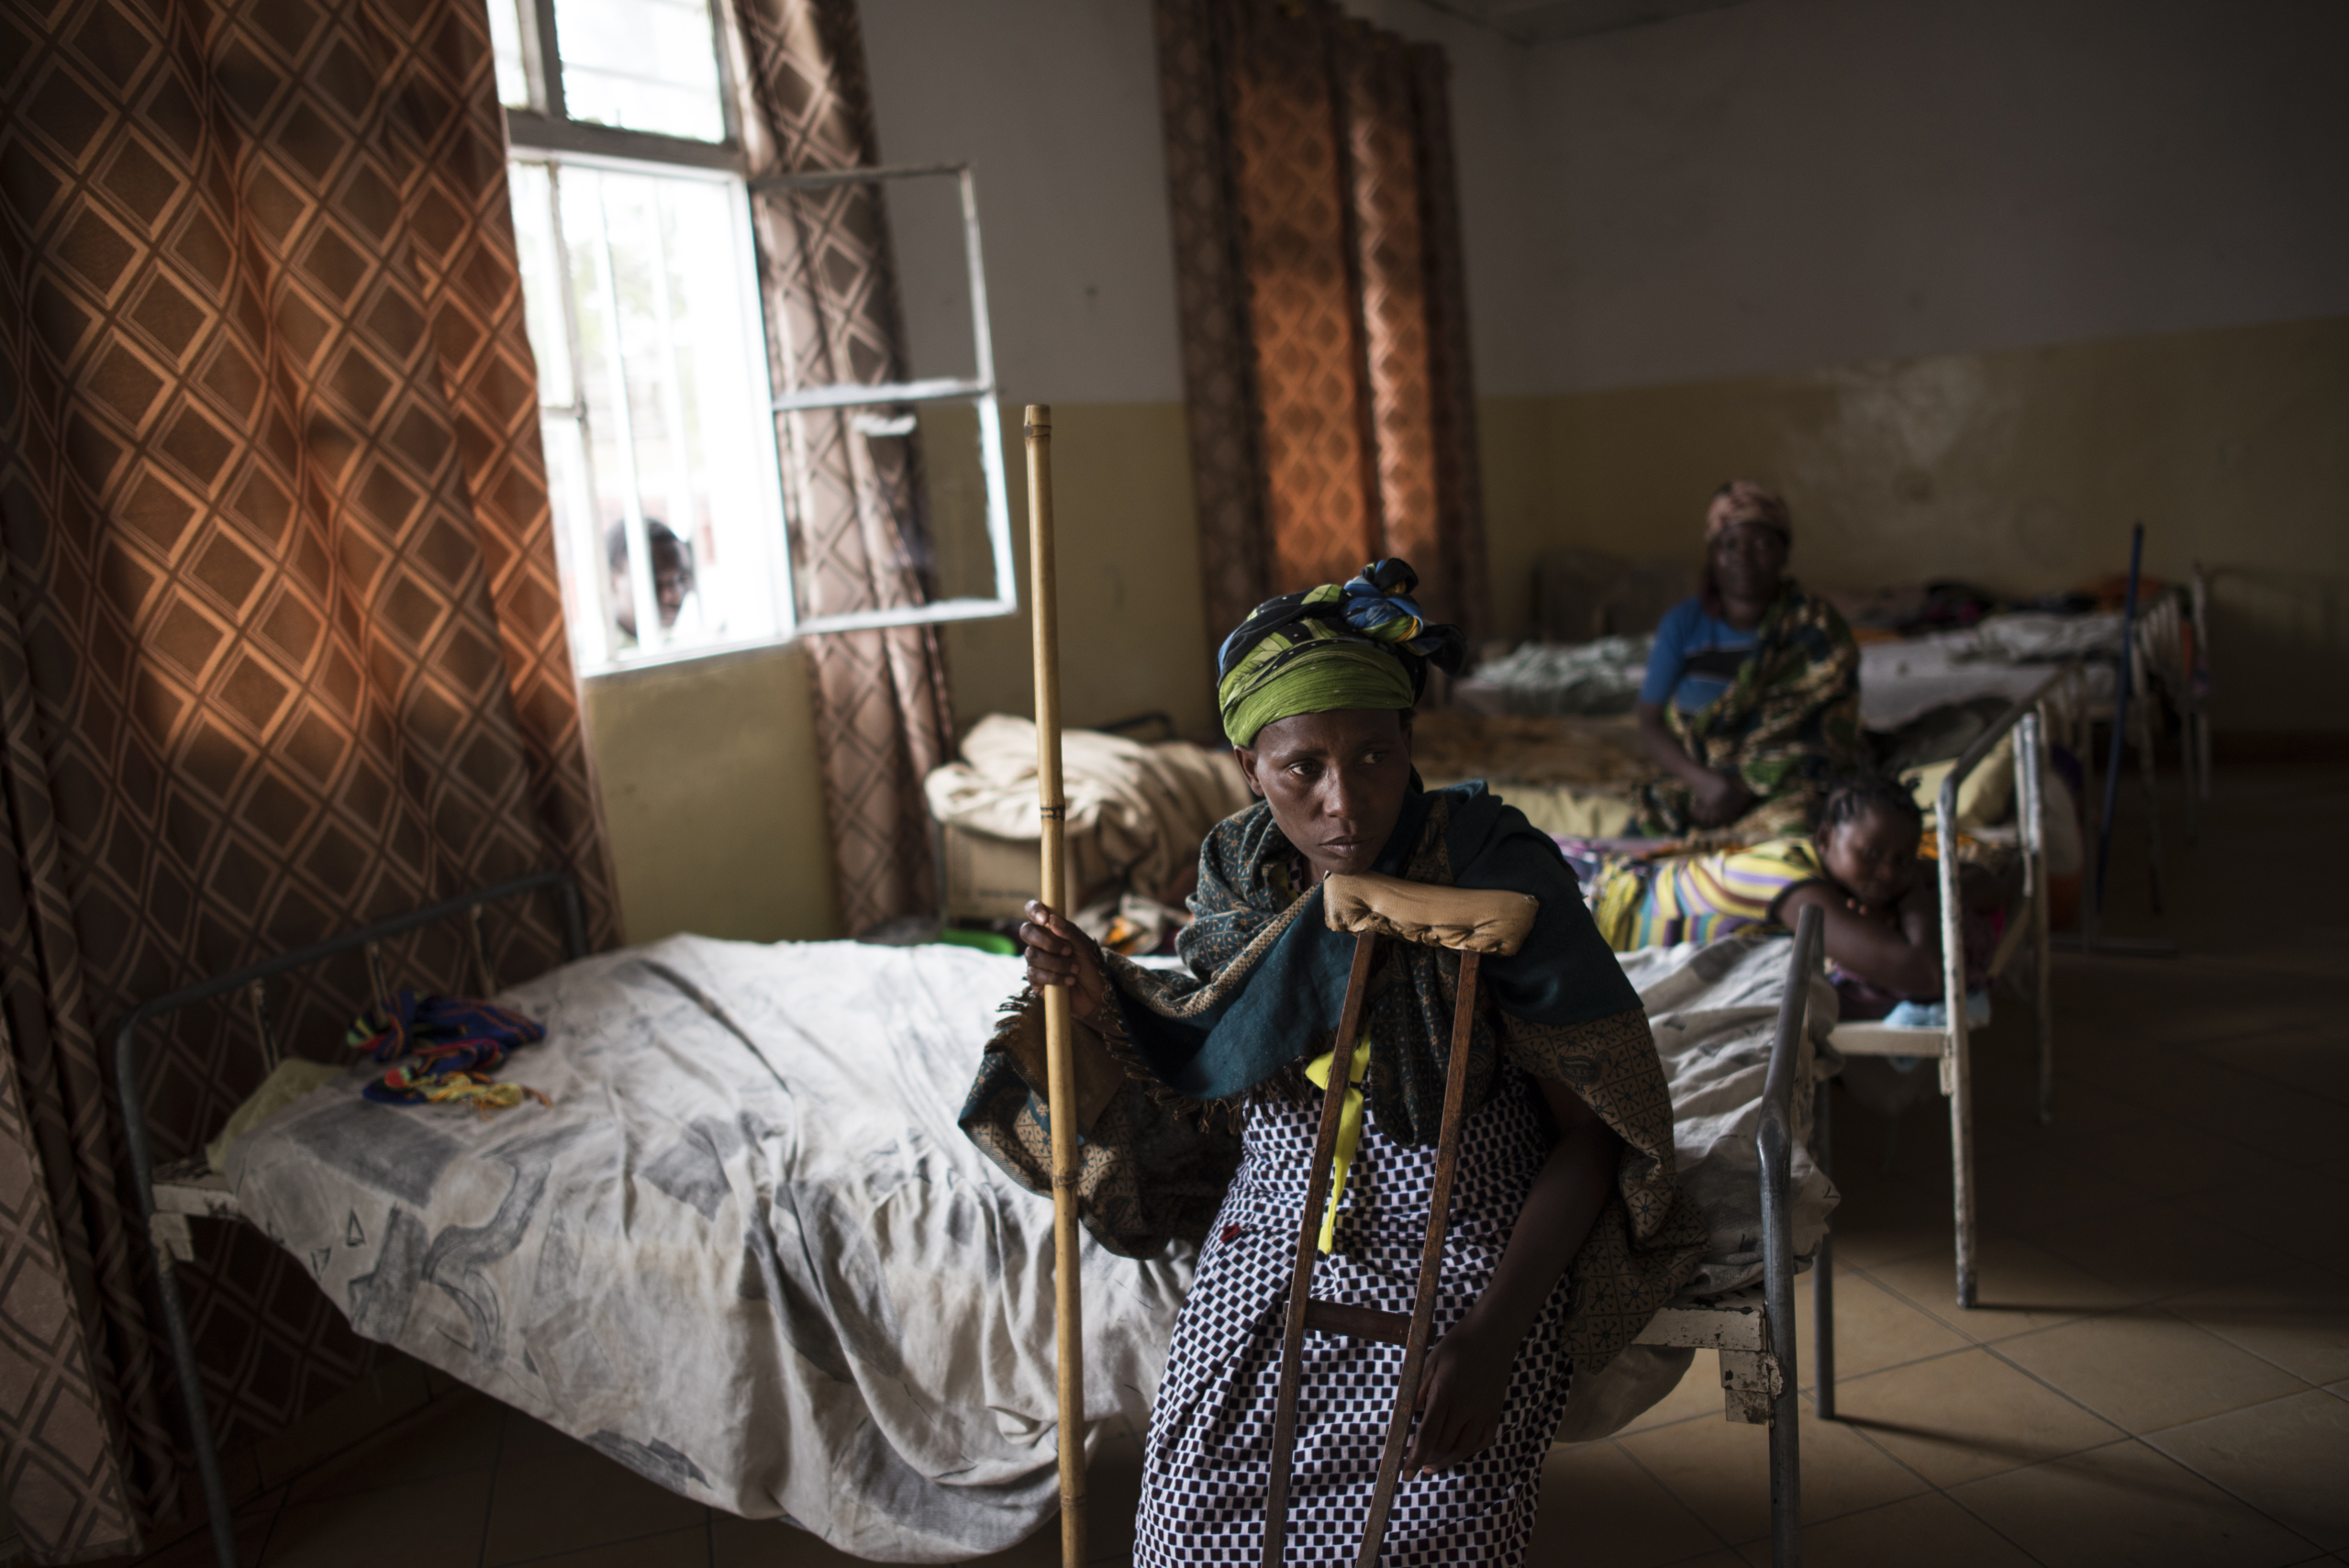 Ferediana Kimanimbaye sits with crutches after recently re-breaking her leg and returning to the Heal Africa Hospital in Goma, the Democratic Republic of Congo, Dec. 5, 2015. Ferediana was gang-raped by soldiers of the Democratic Forces for the Liberation of Rwanda (FDLR), a Hutu rebel group in eastern DRC, when they attacked her village more than seven years ago. They killed her husband, and three different men raped her. She fell and broke her leg while she was escaping.